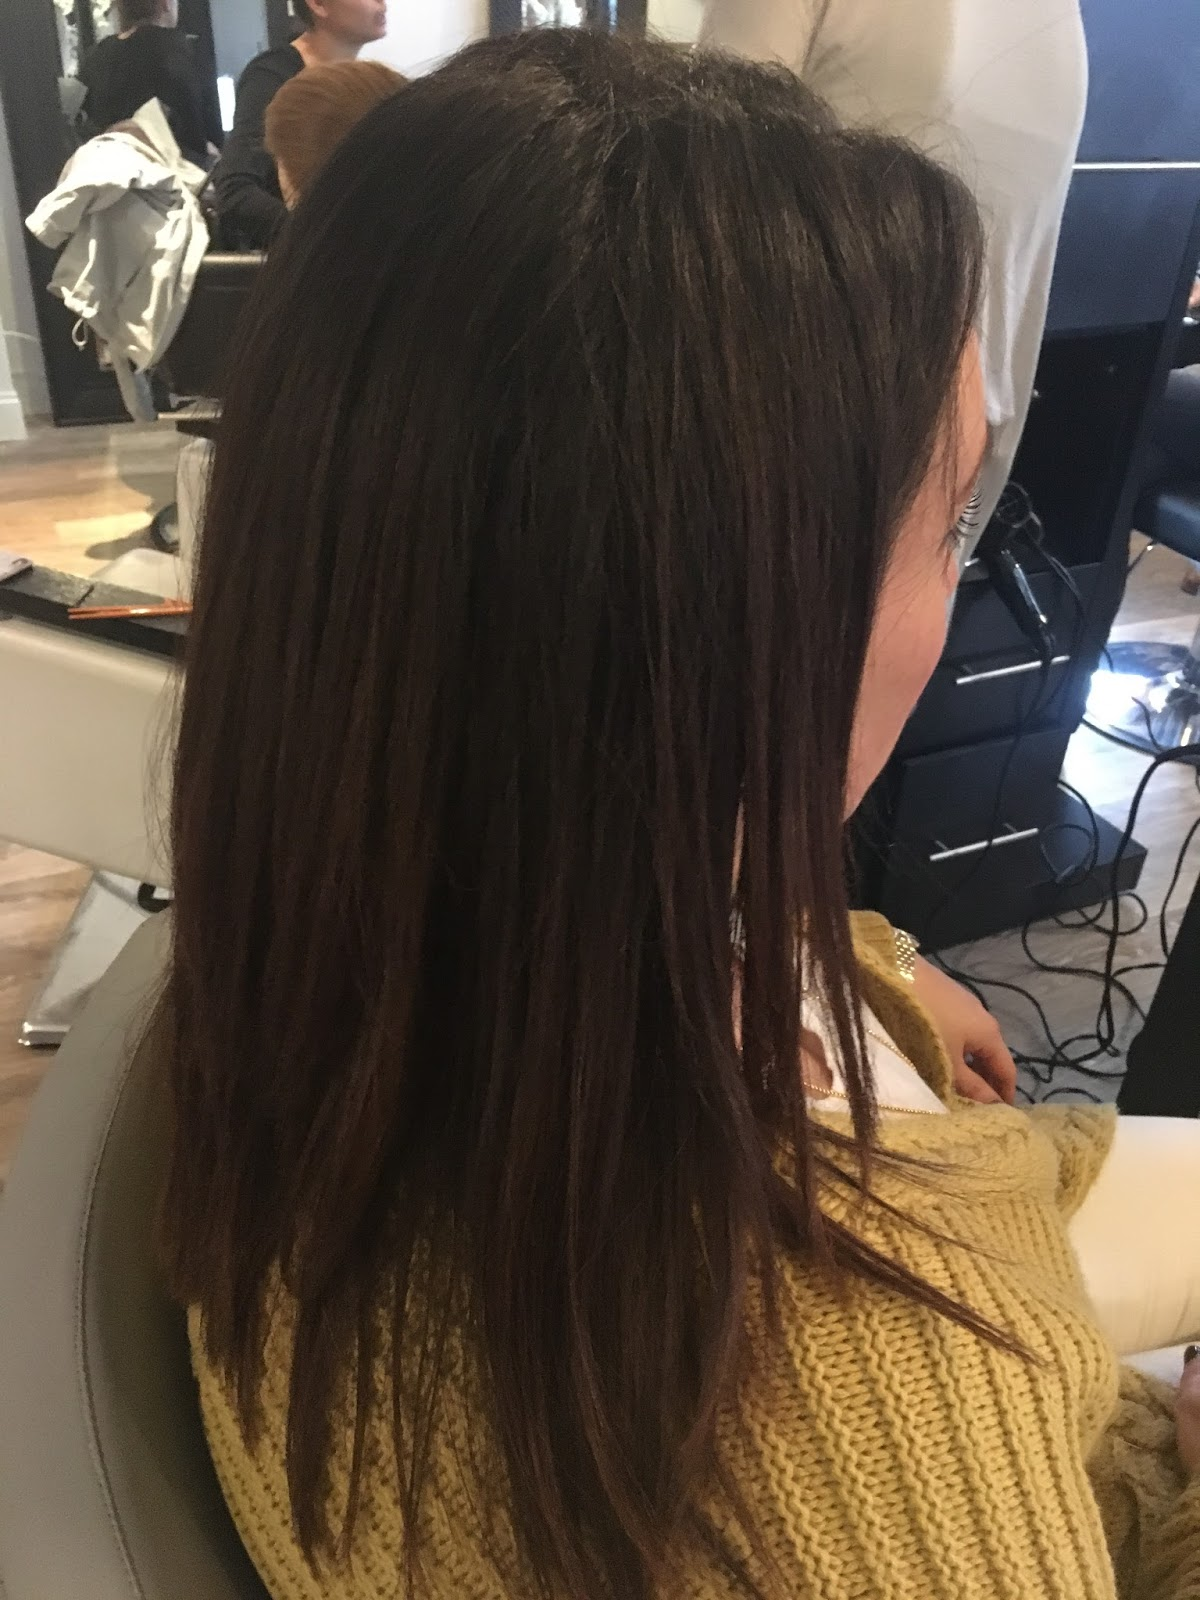 Hair Extensions By Jaclynn Kate Brunette Hair Extensions Done In